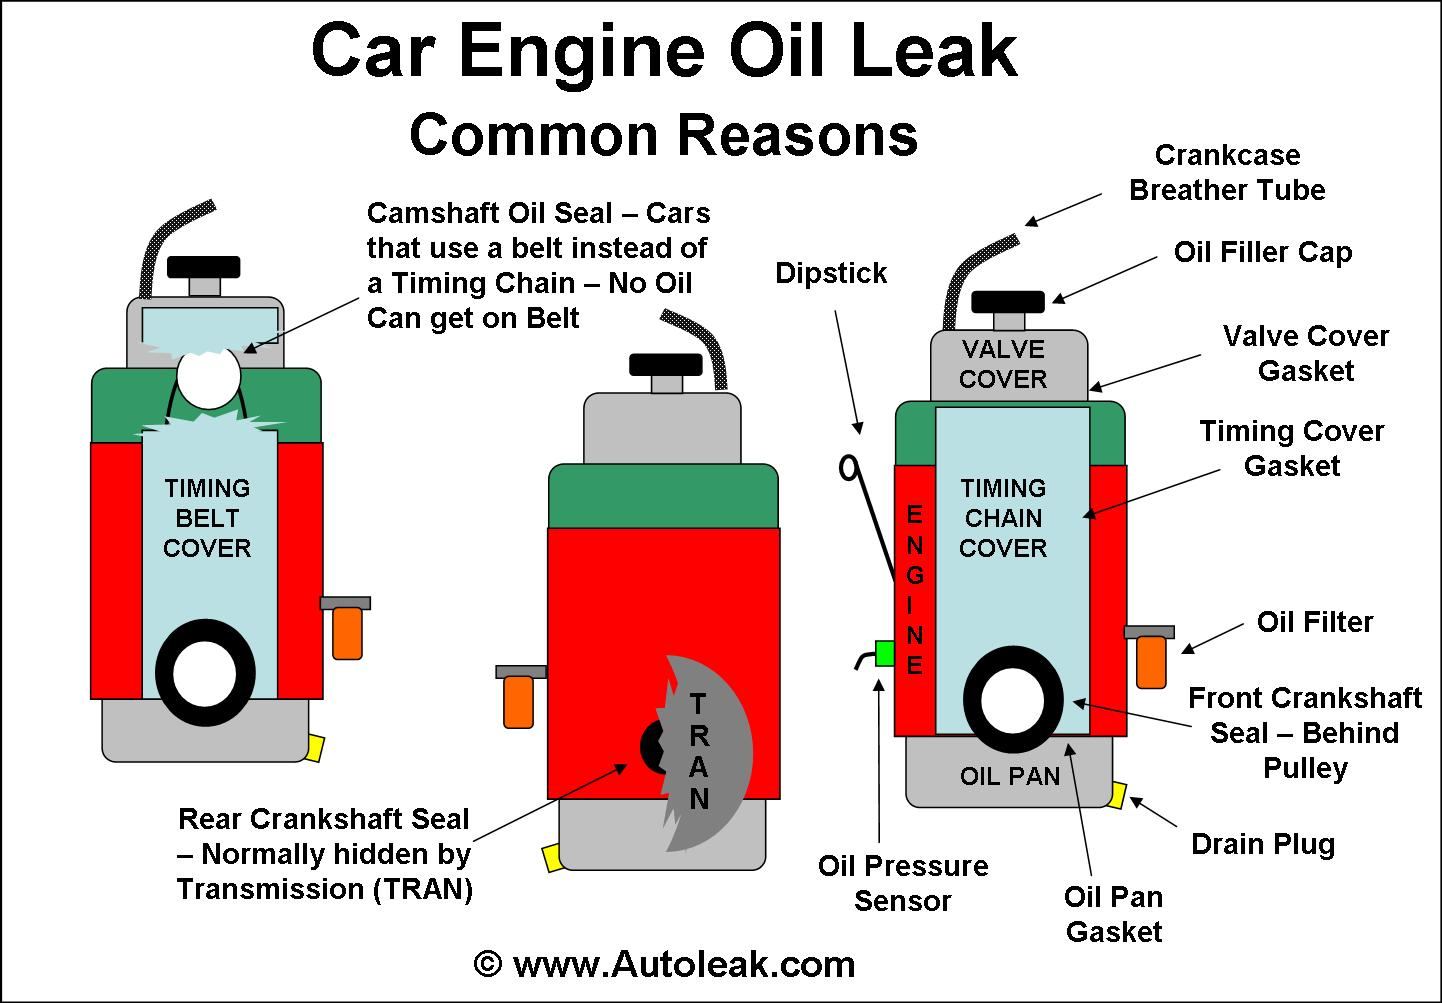 Engine Oil Leak. What causes Car Engine Oil Leak. How to Fix Car Engine Oil Leak